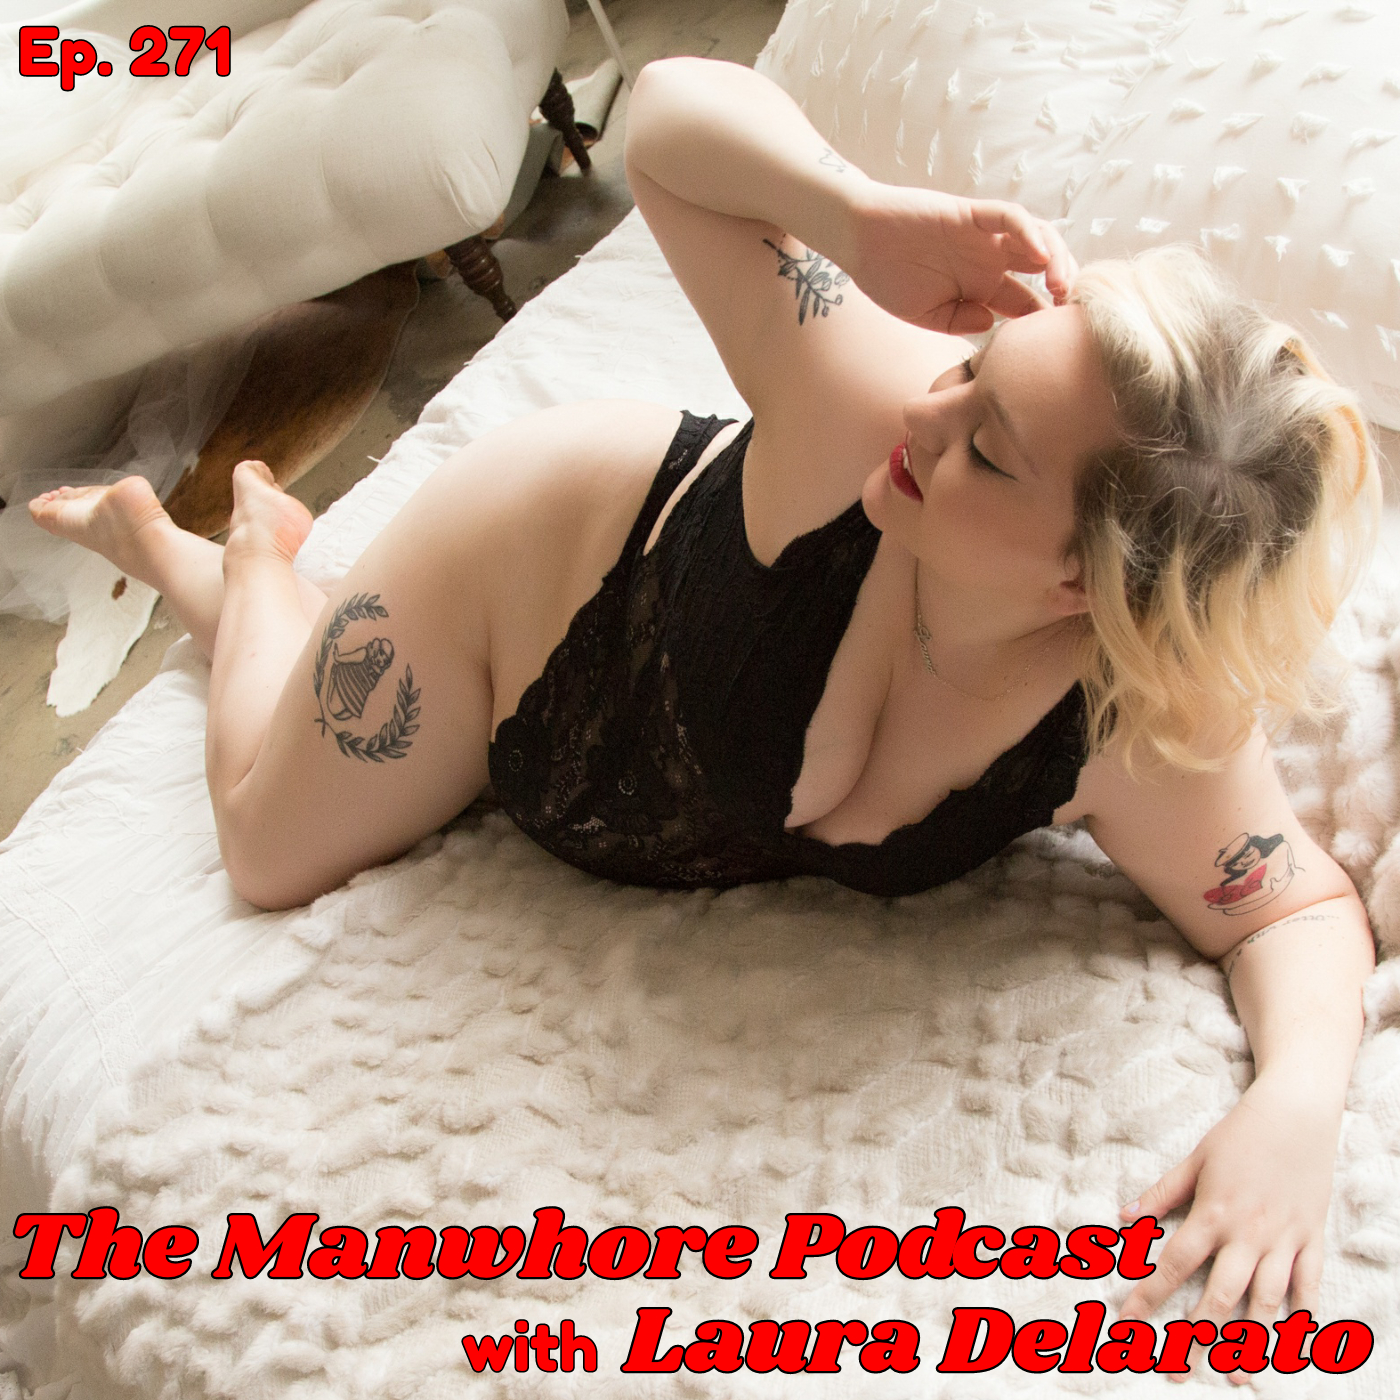 The Manwhore Podcast: A Sex-Positive Quest - Ep. 271: Winning The War Against Your Body with body-positive advocate Laura Delarato